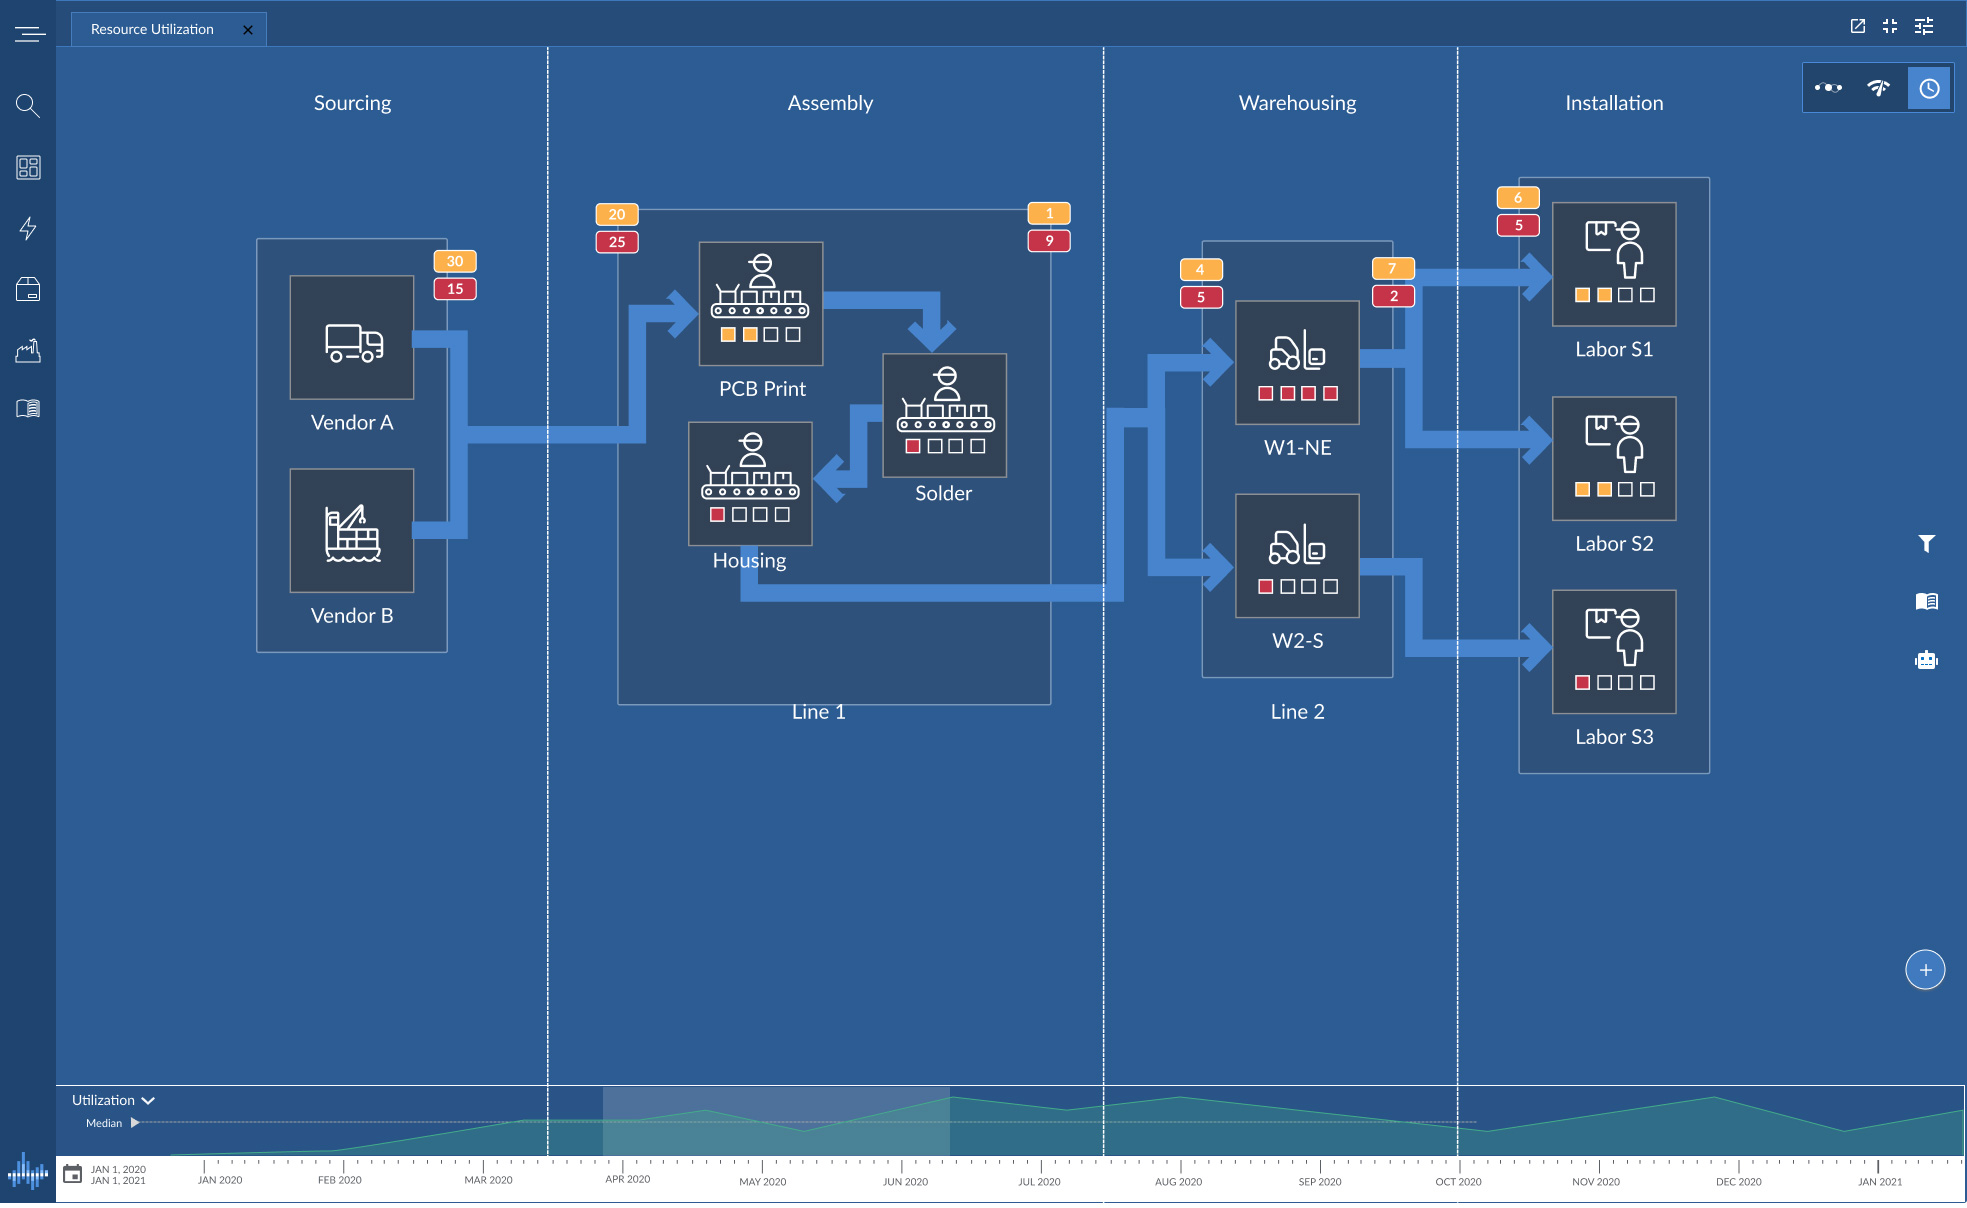 Screenshot Image of Flowchart Resource Planning